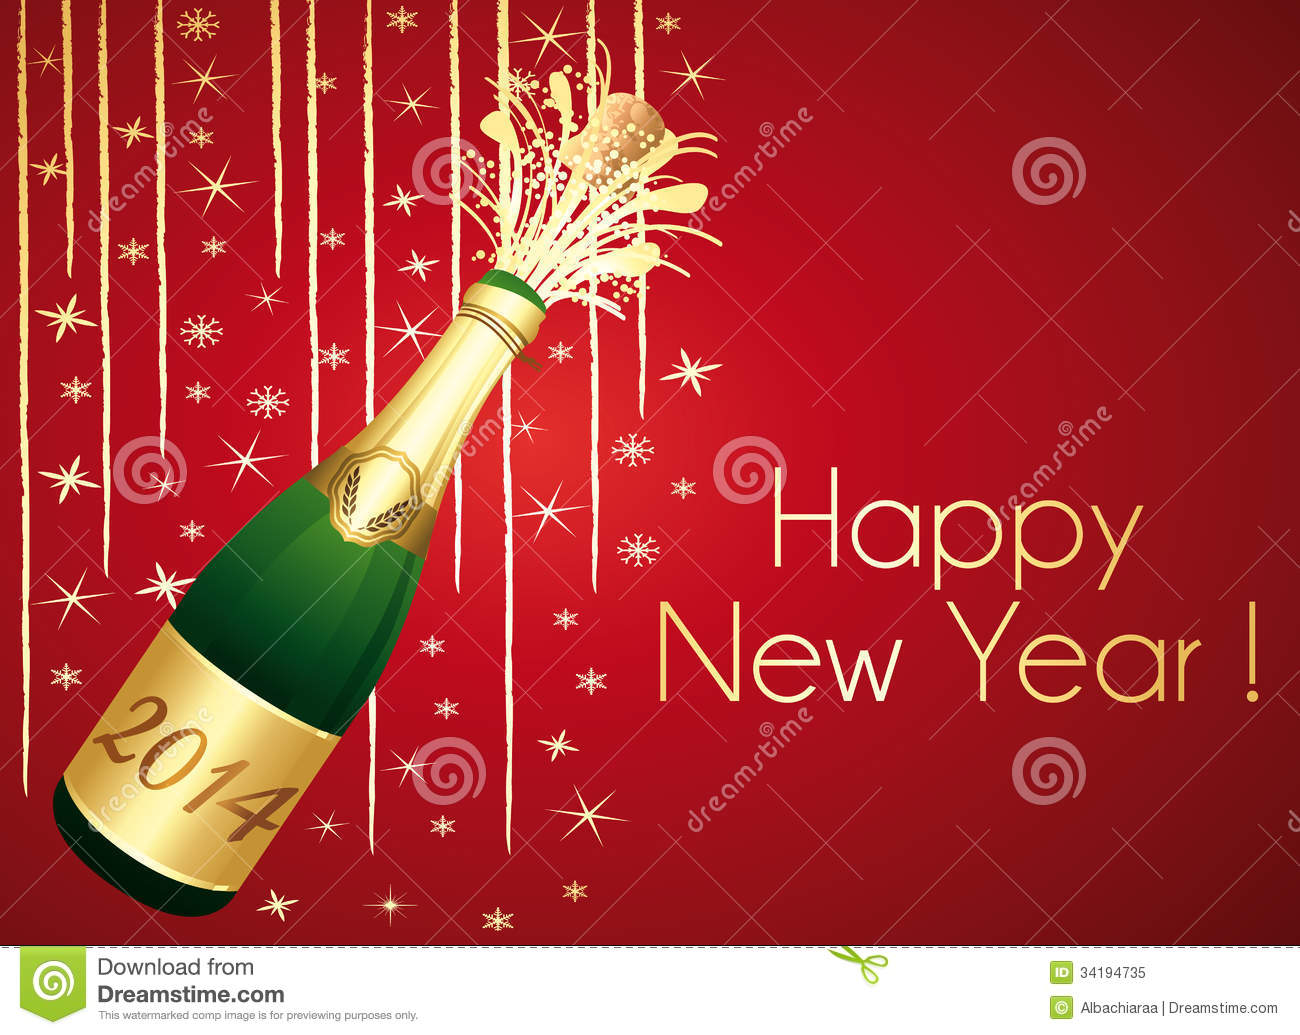 Happy new year 2014 red and gold greeting card stock vector happy new year 2014 red and gold greeting card m4hsunfo